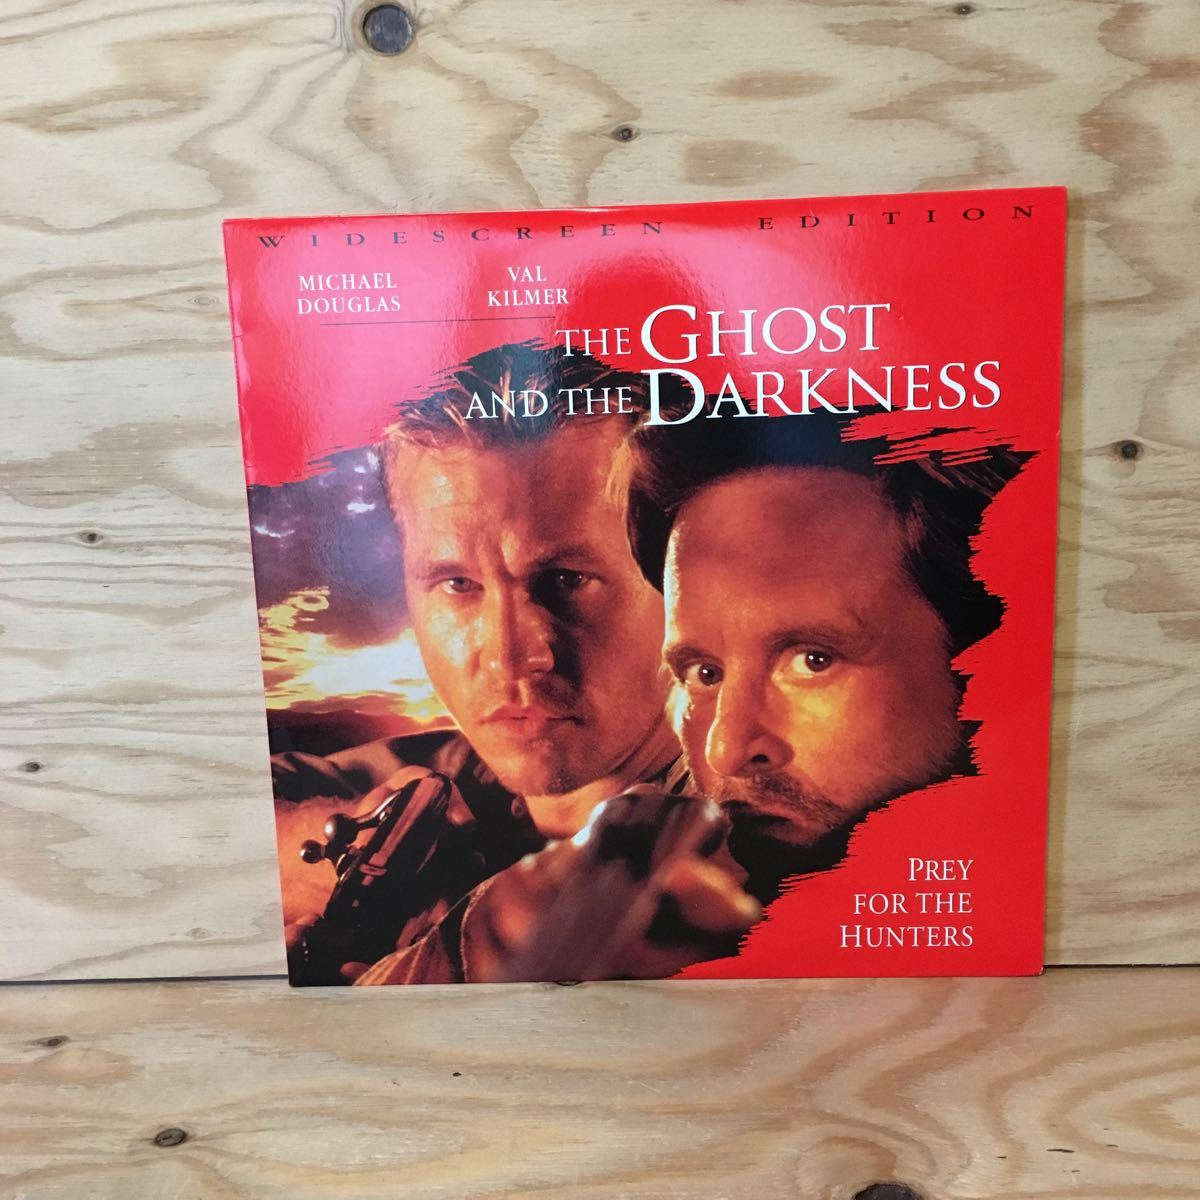 ◎Y3FIID-200303 レア[THE GHOST AND THE DARKNESS 輸入盤]LD レーザーディスク MICHAEL DOUGLAS STEPHEN HOPKINS_画像1